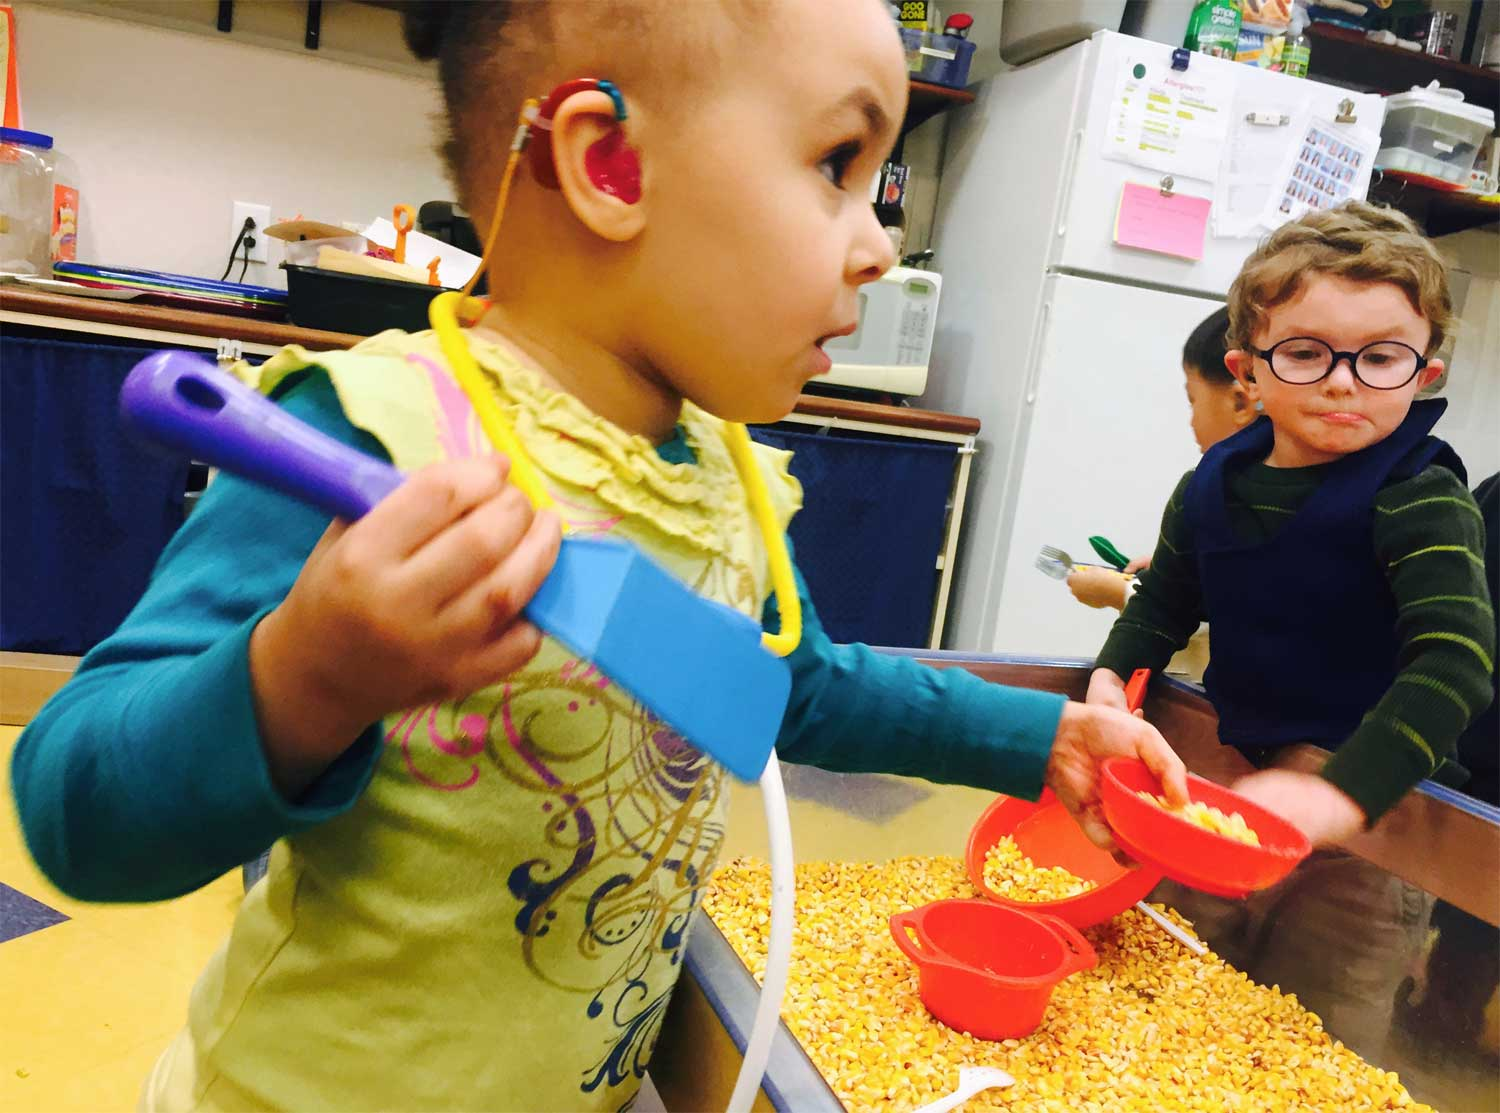 young child with hearing aid sandbox of popcorn